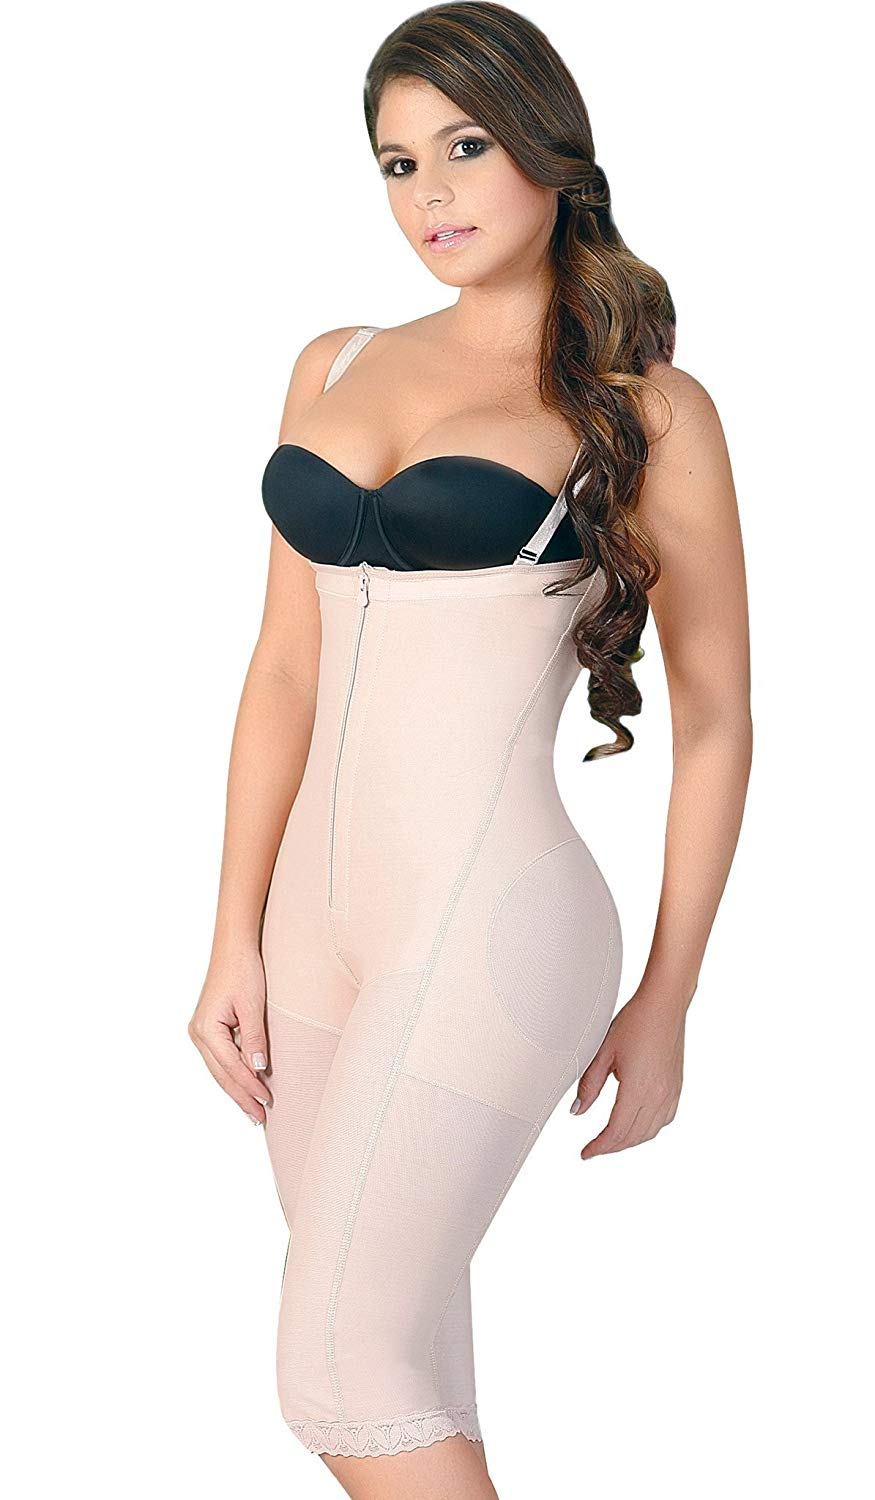 5651205d49 Get Quotations · Salome 0213 Surgery Girdle Body Shaper Fajas Reductoras  Strapless Completas